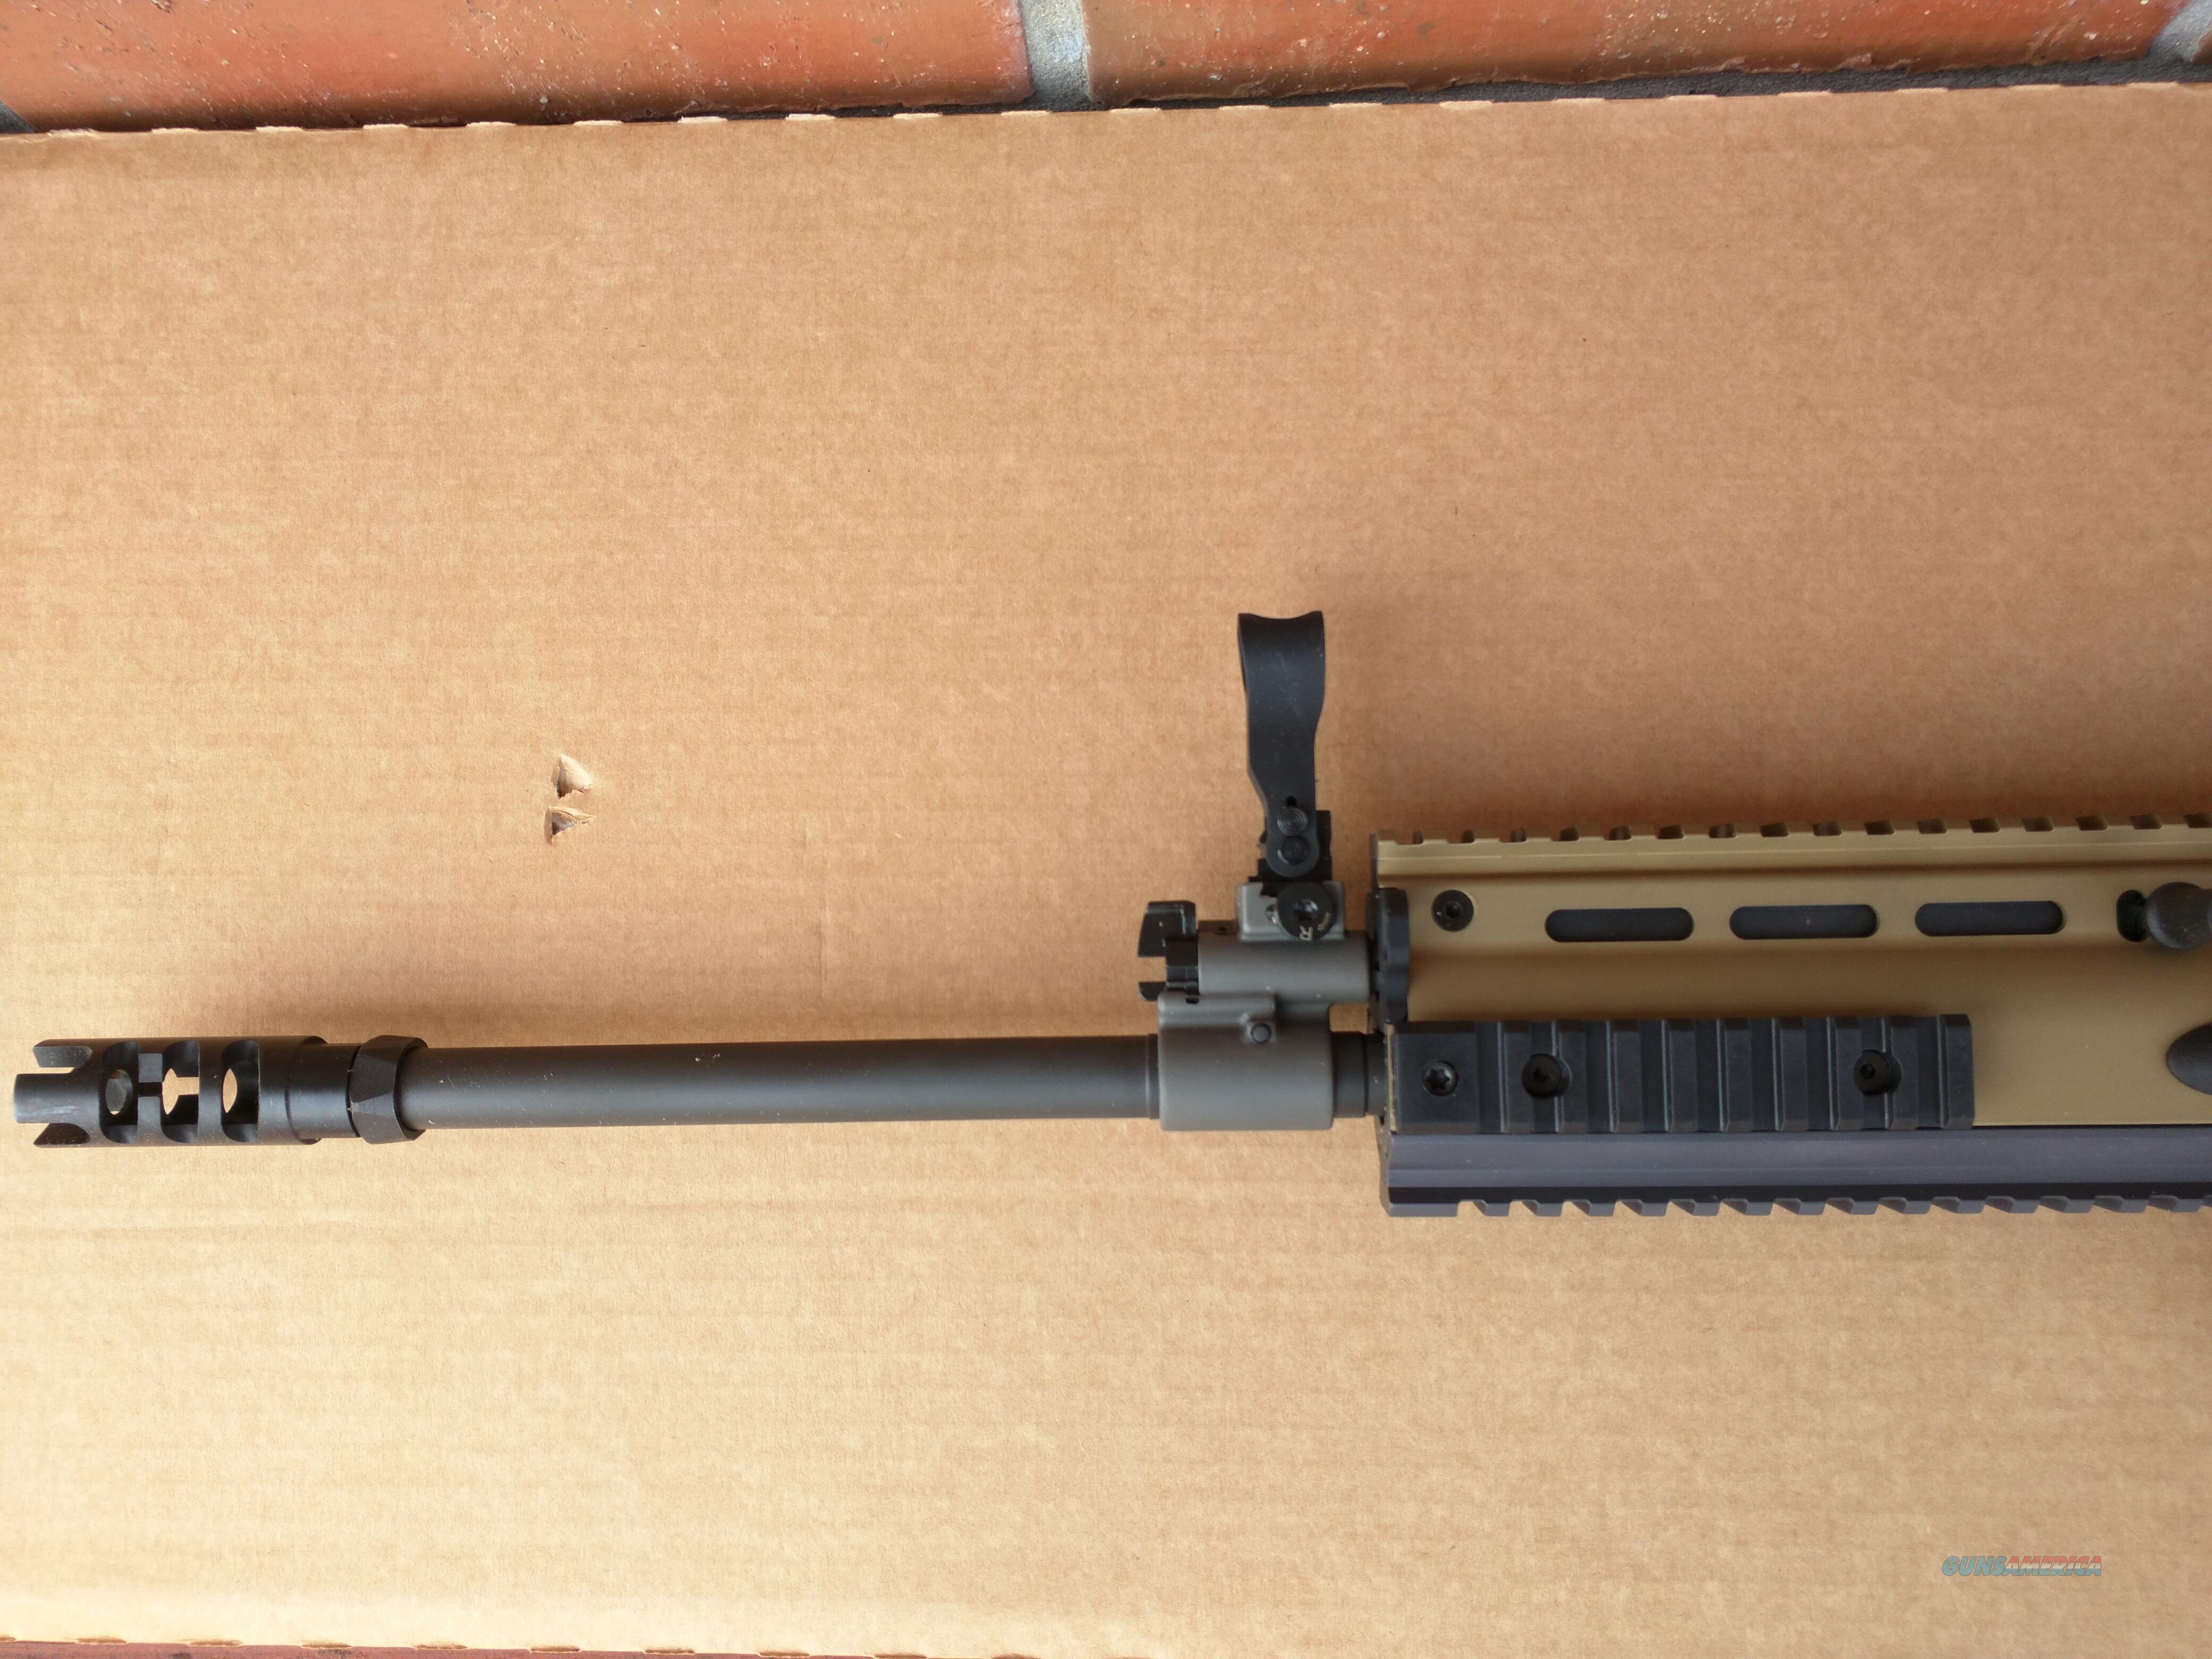 FNH FN Scar 17s 7 62x51 Nato 308 FDE, 1-20 rd mag and 1-10 rd mag 16